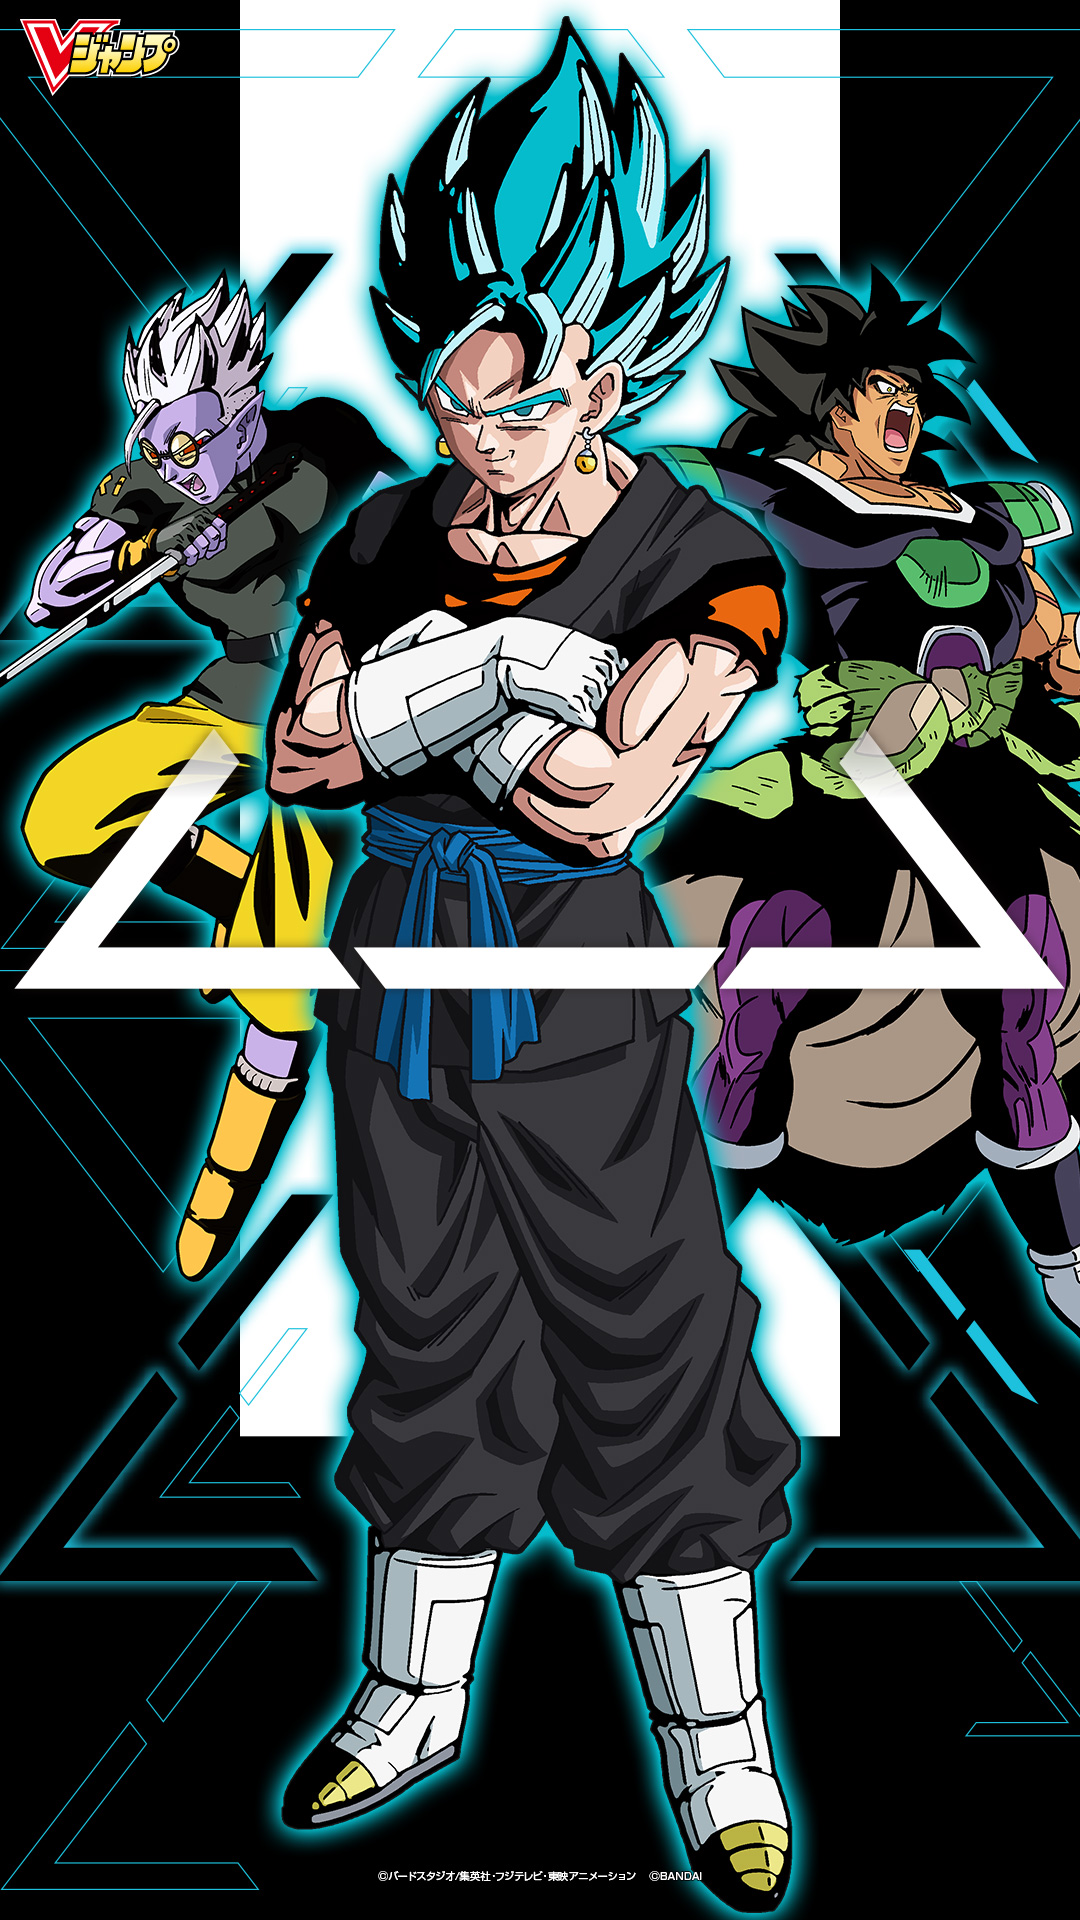 23 dragon ball super broly wallpapers on wallpapersafari - Dragon ball super wallpaper 1080x1920 ...